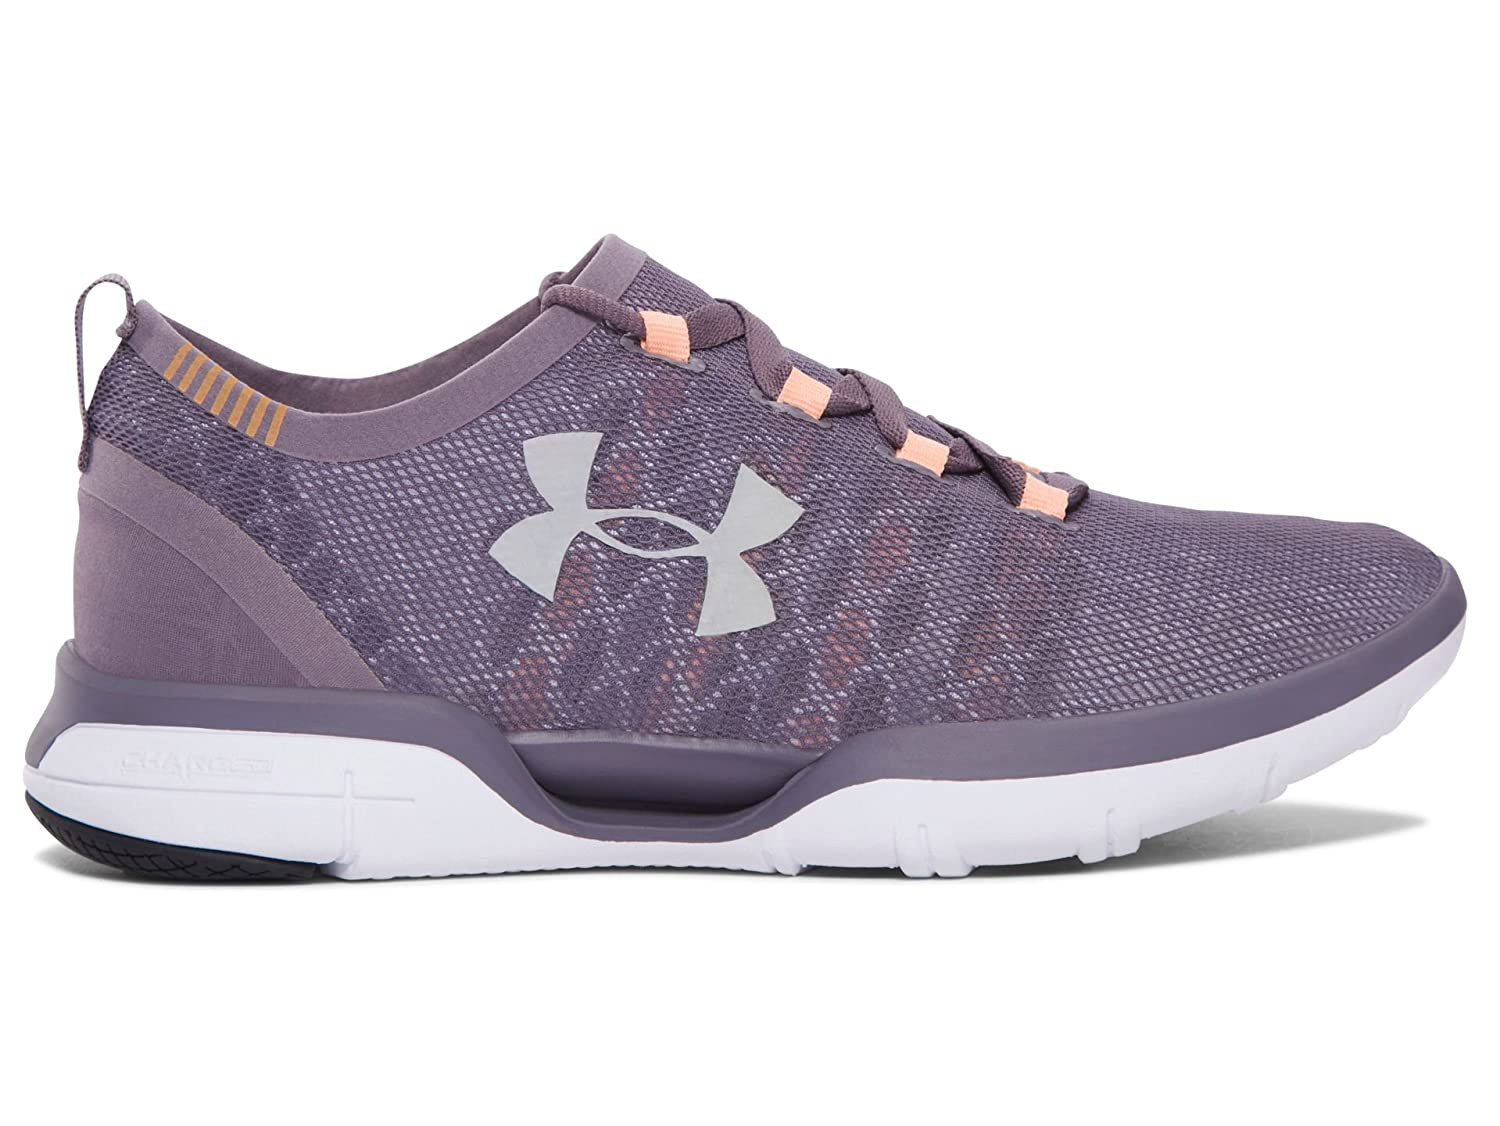 Under Armour Women's Charged CoolSwitch Running Shoe B01GQKFMKA 9 B(M) US|Purple